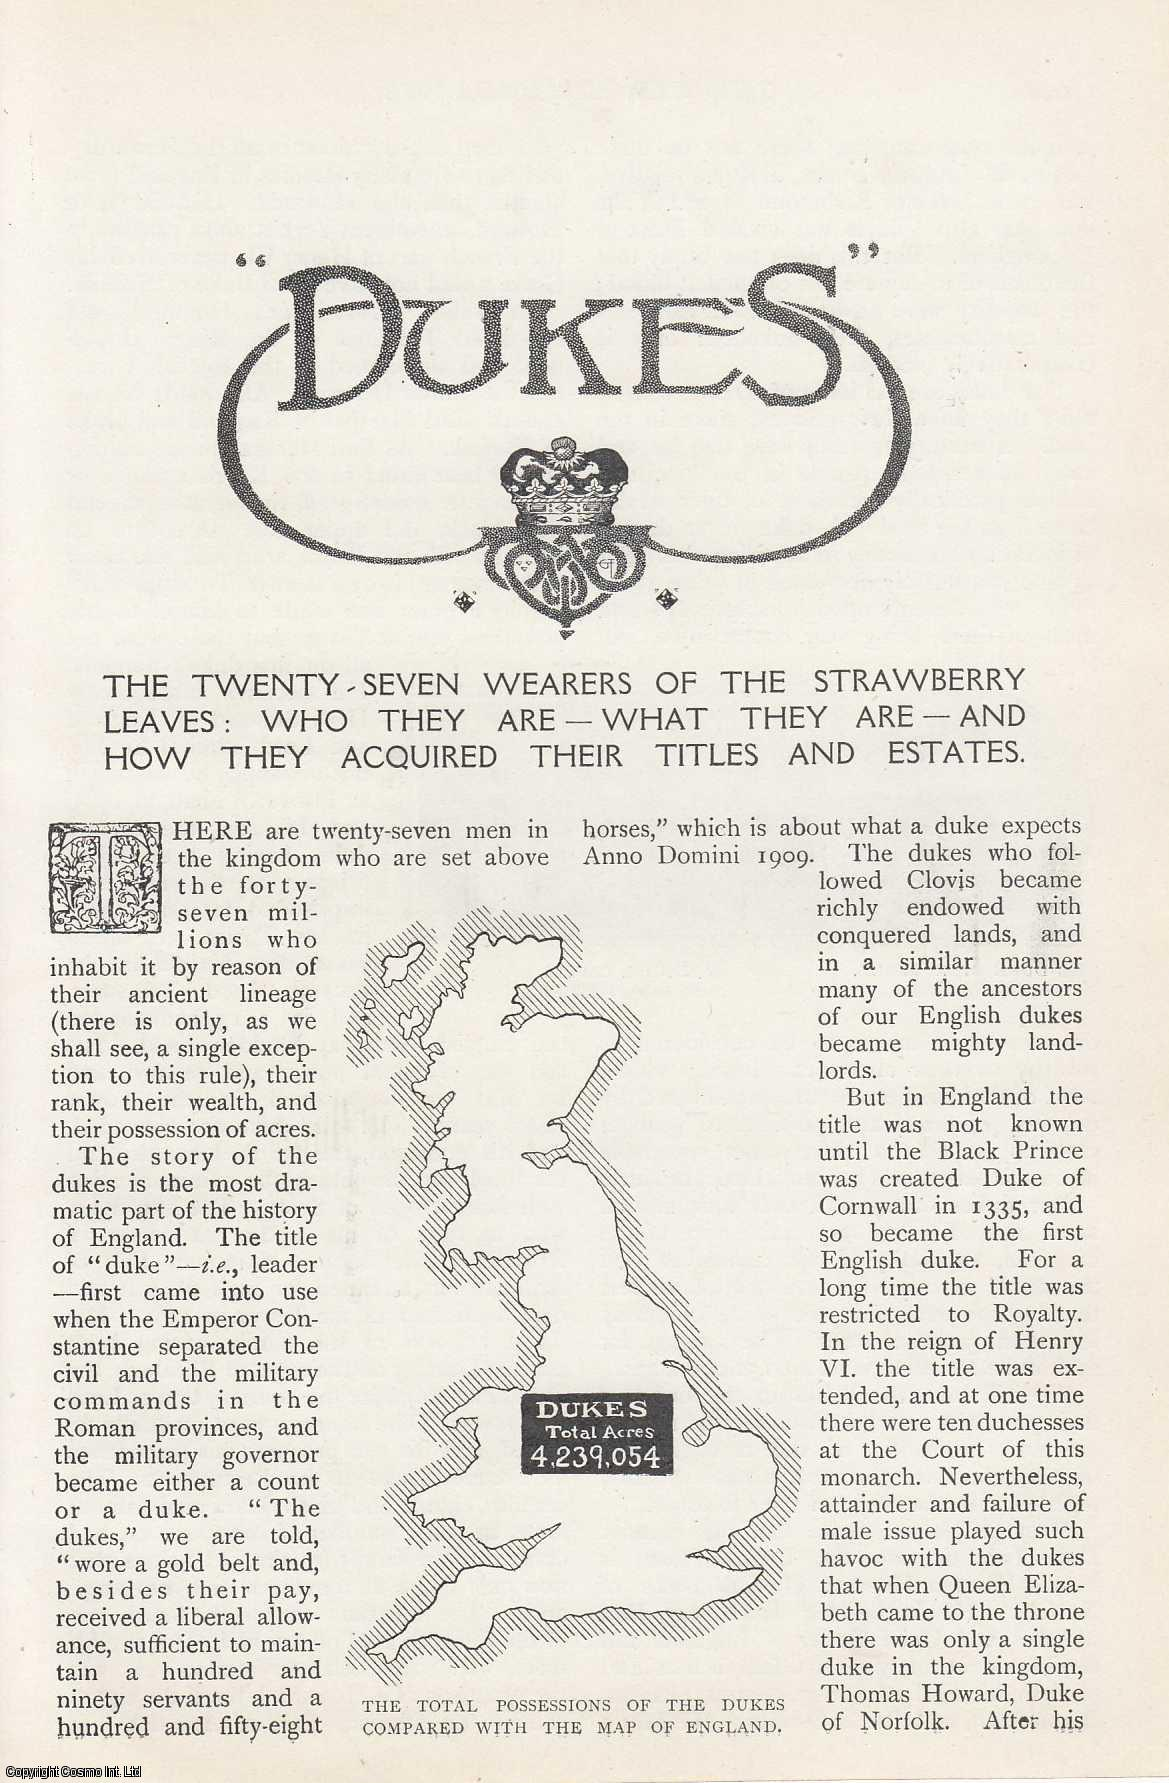 --- - Dukes. Who They Are and How They Acquired Their Titles and Estates. A rare original article from The Strand Magazine, 1909.